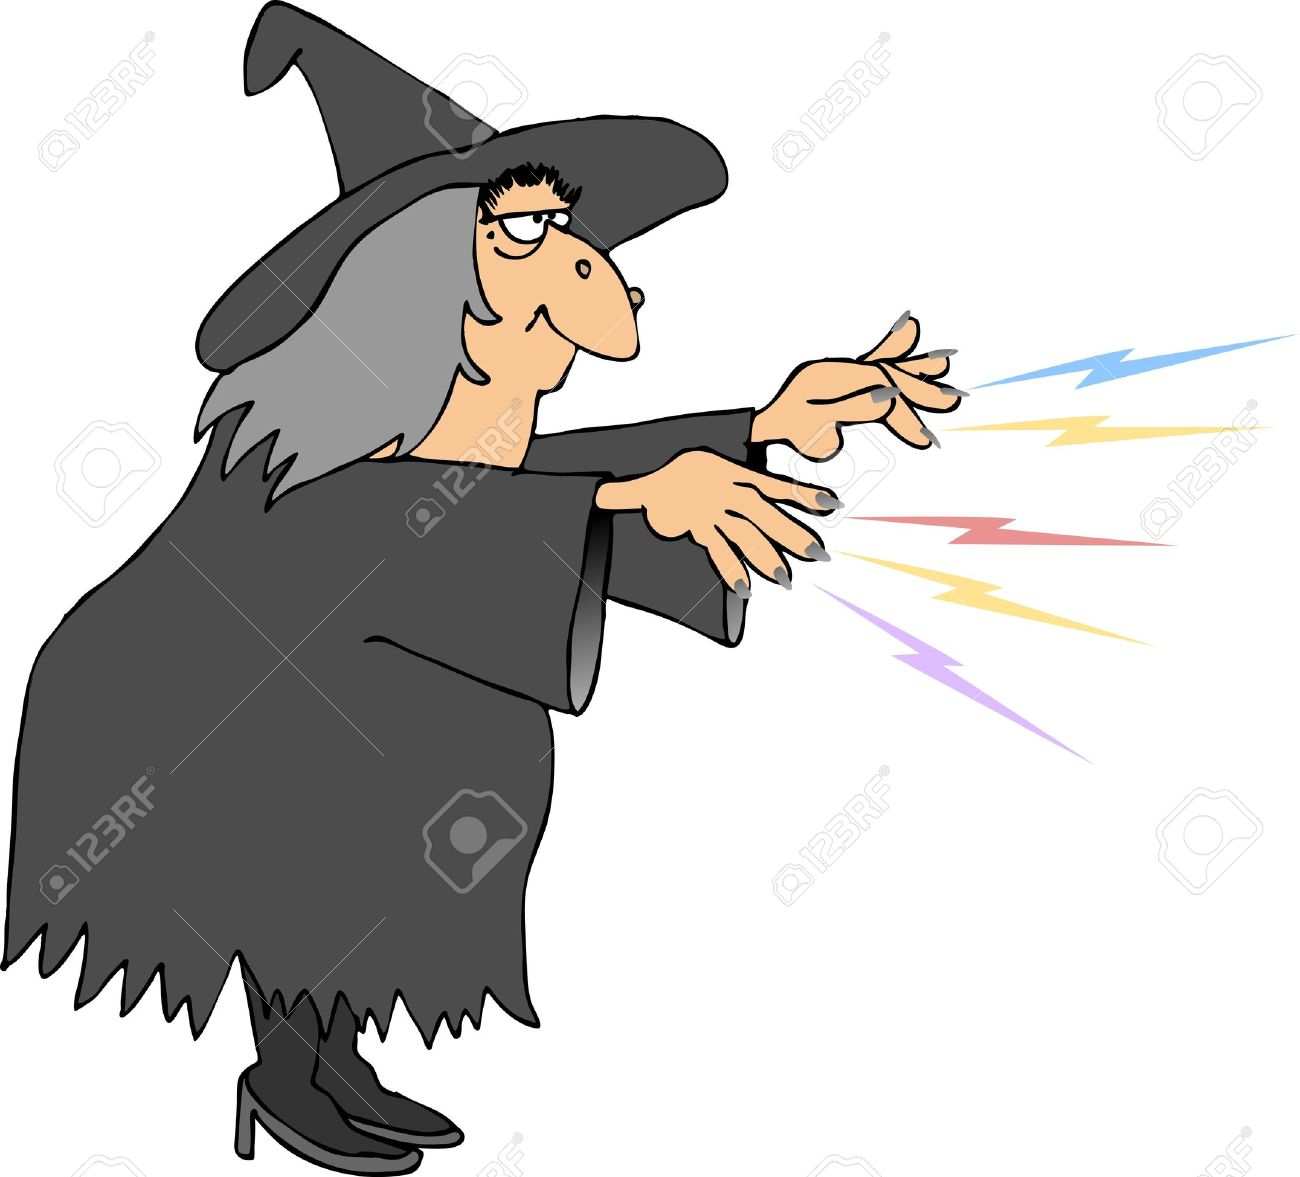 409369-witch-casting-a-spell.jpg